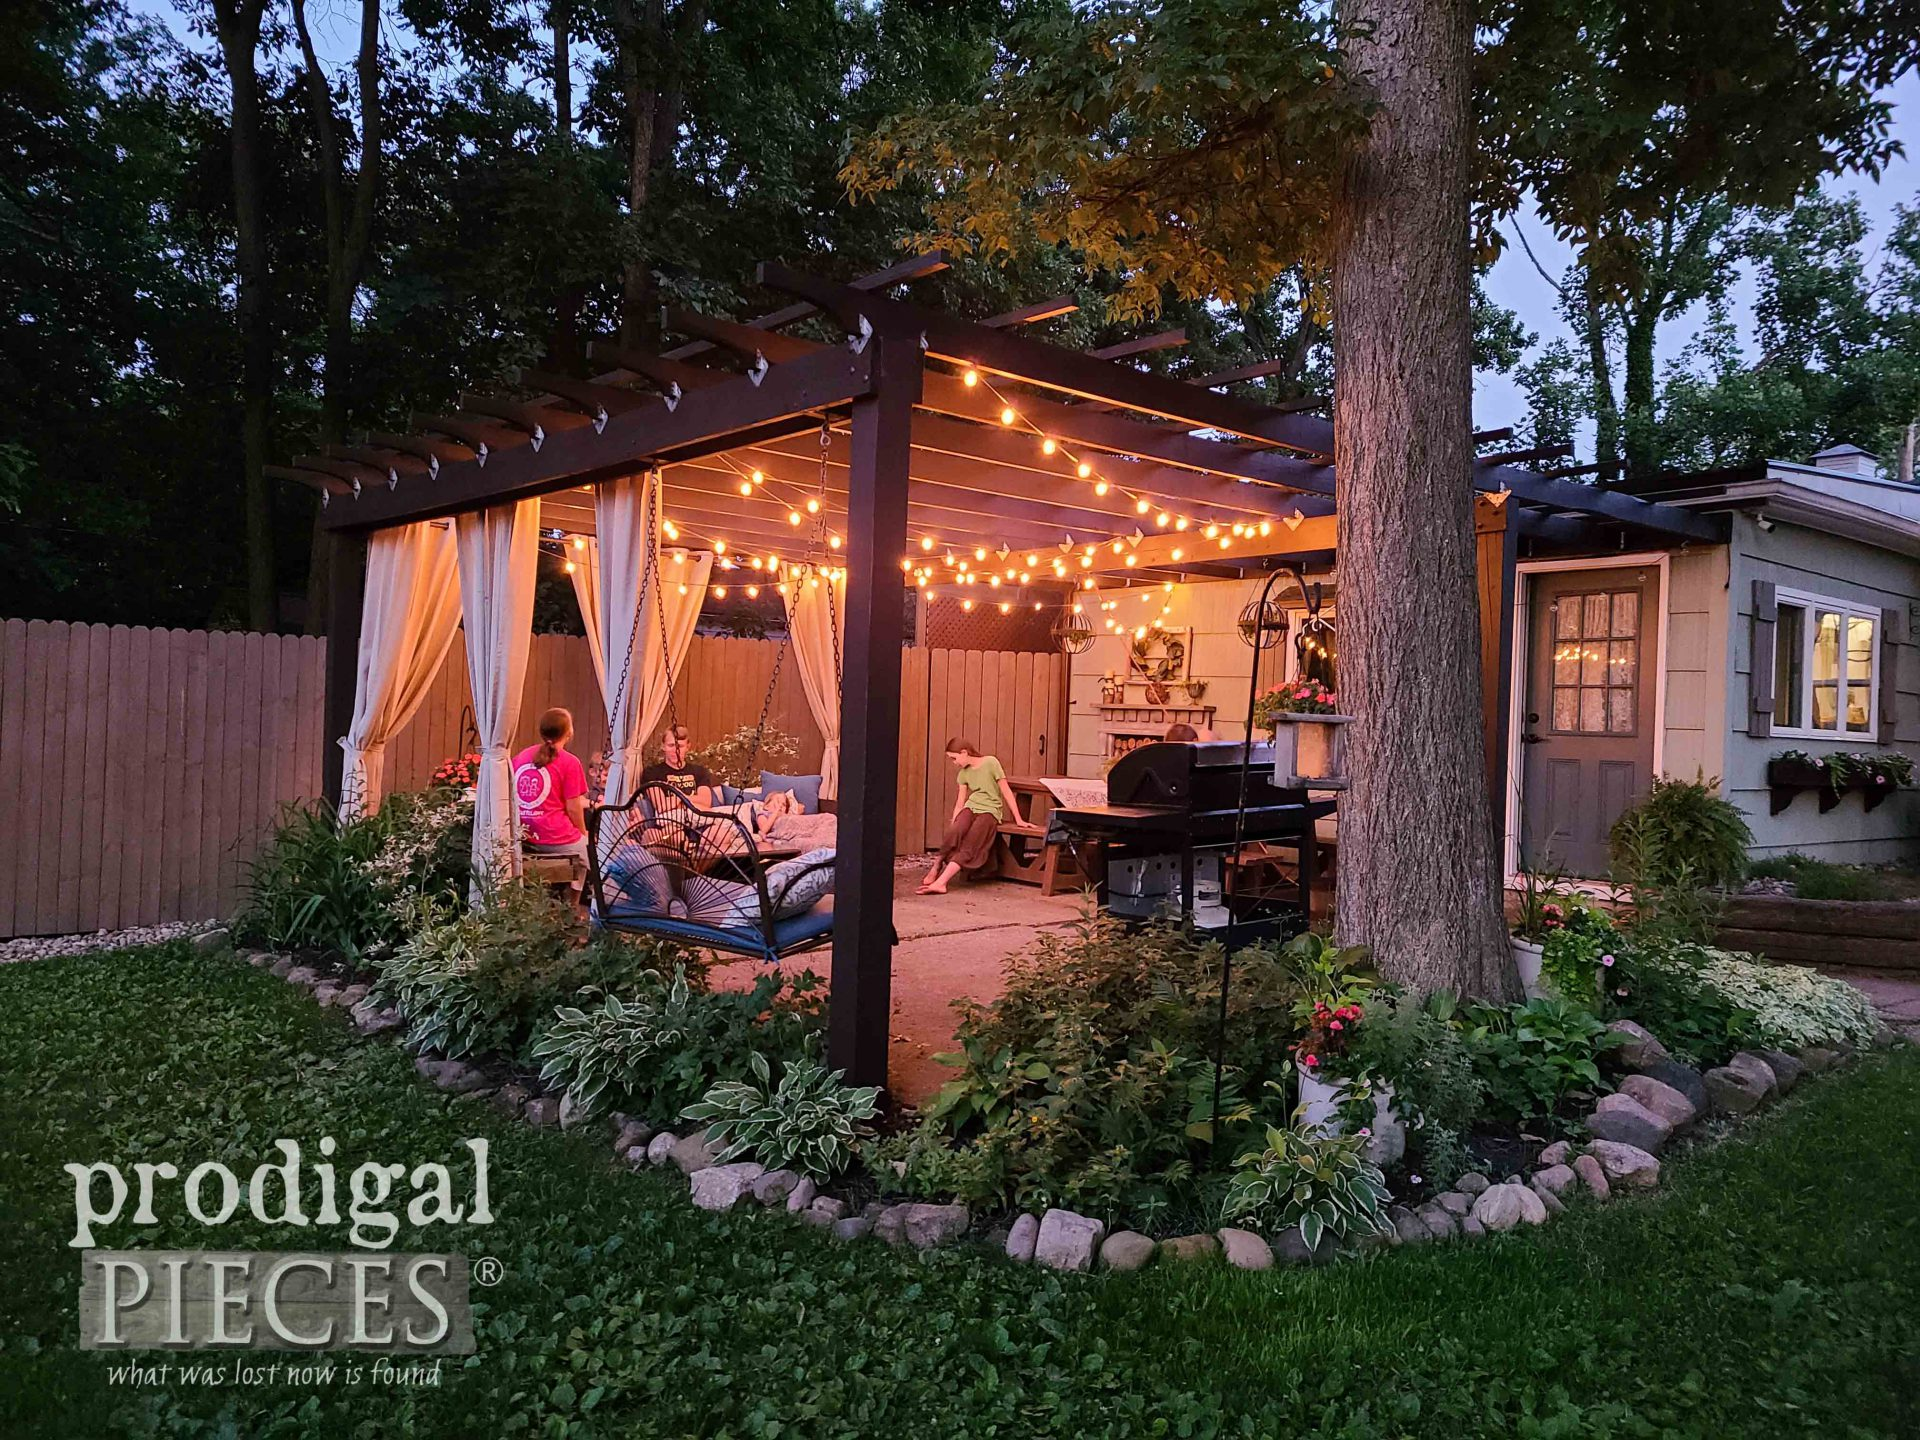 Nighttime Cafe Lights on Patio with Pergola by Prodigal Pieces | prodigalpieces.com #prodigalpieces #diy #home #homedecor #patio #outdoor